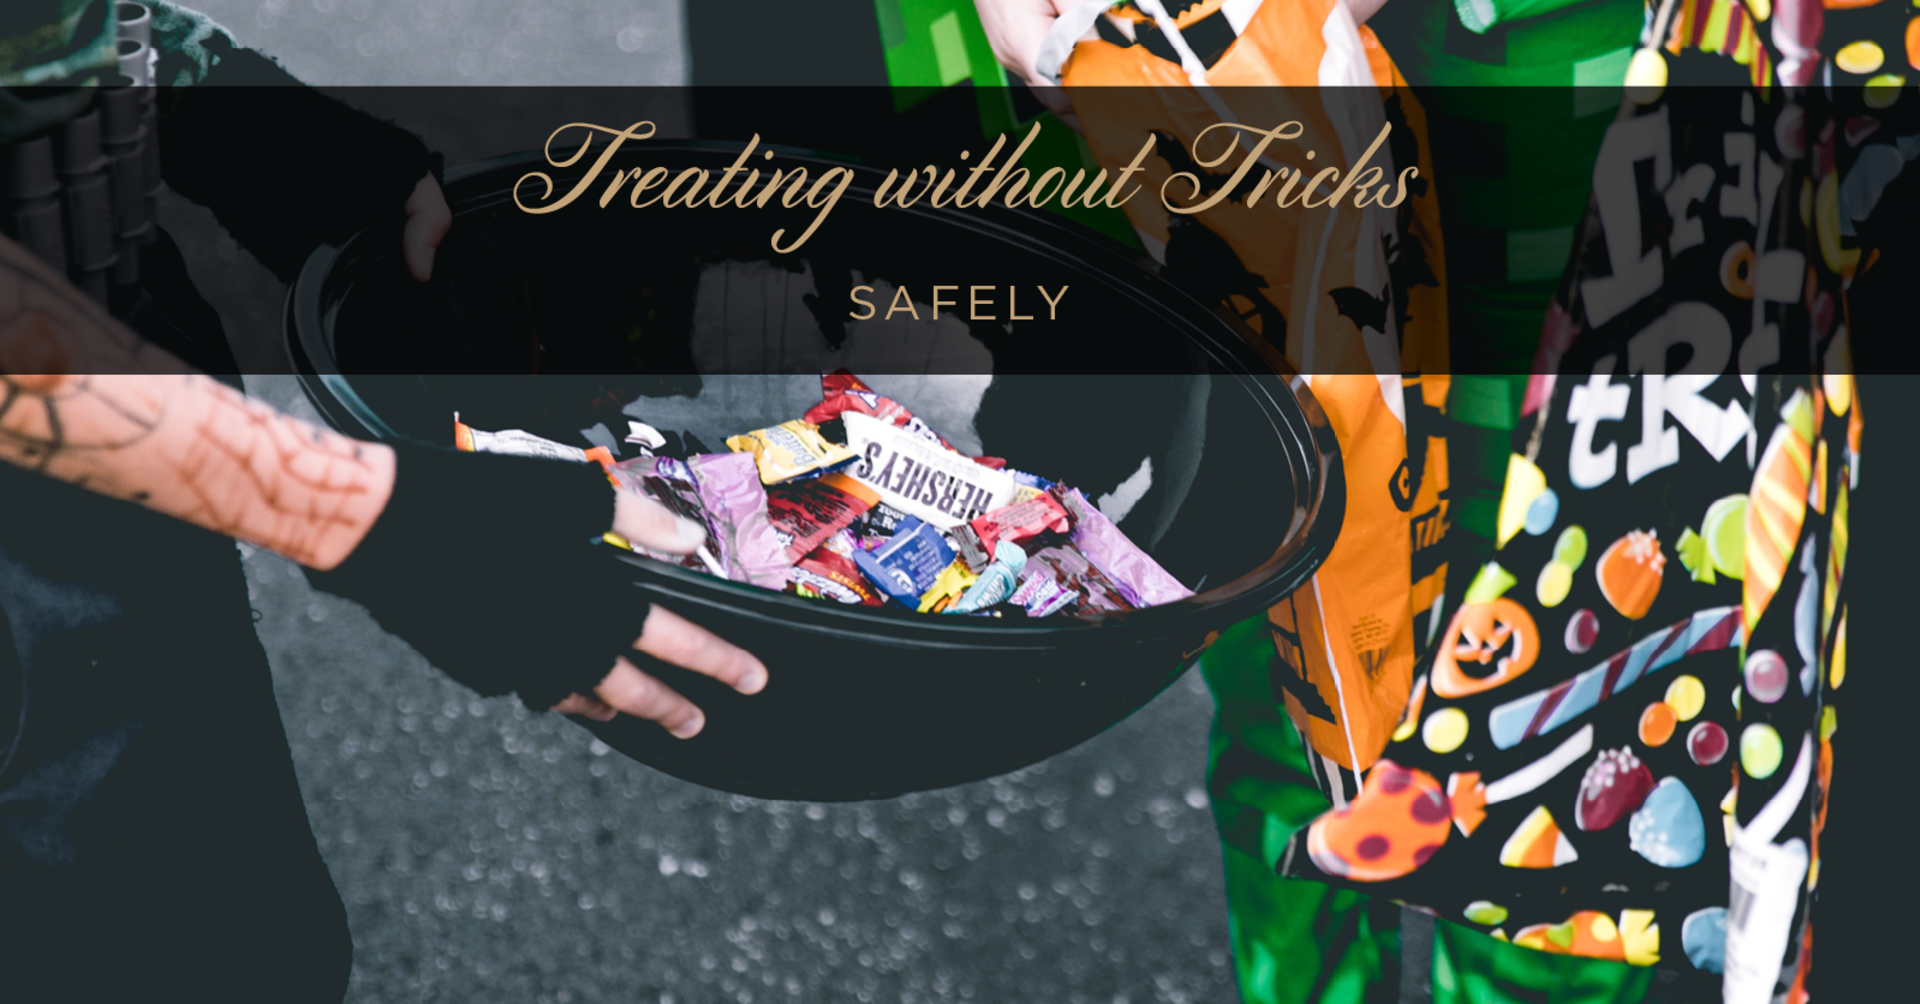 Safely Treating Without Tricks